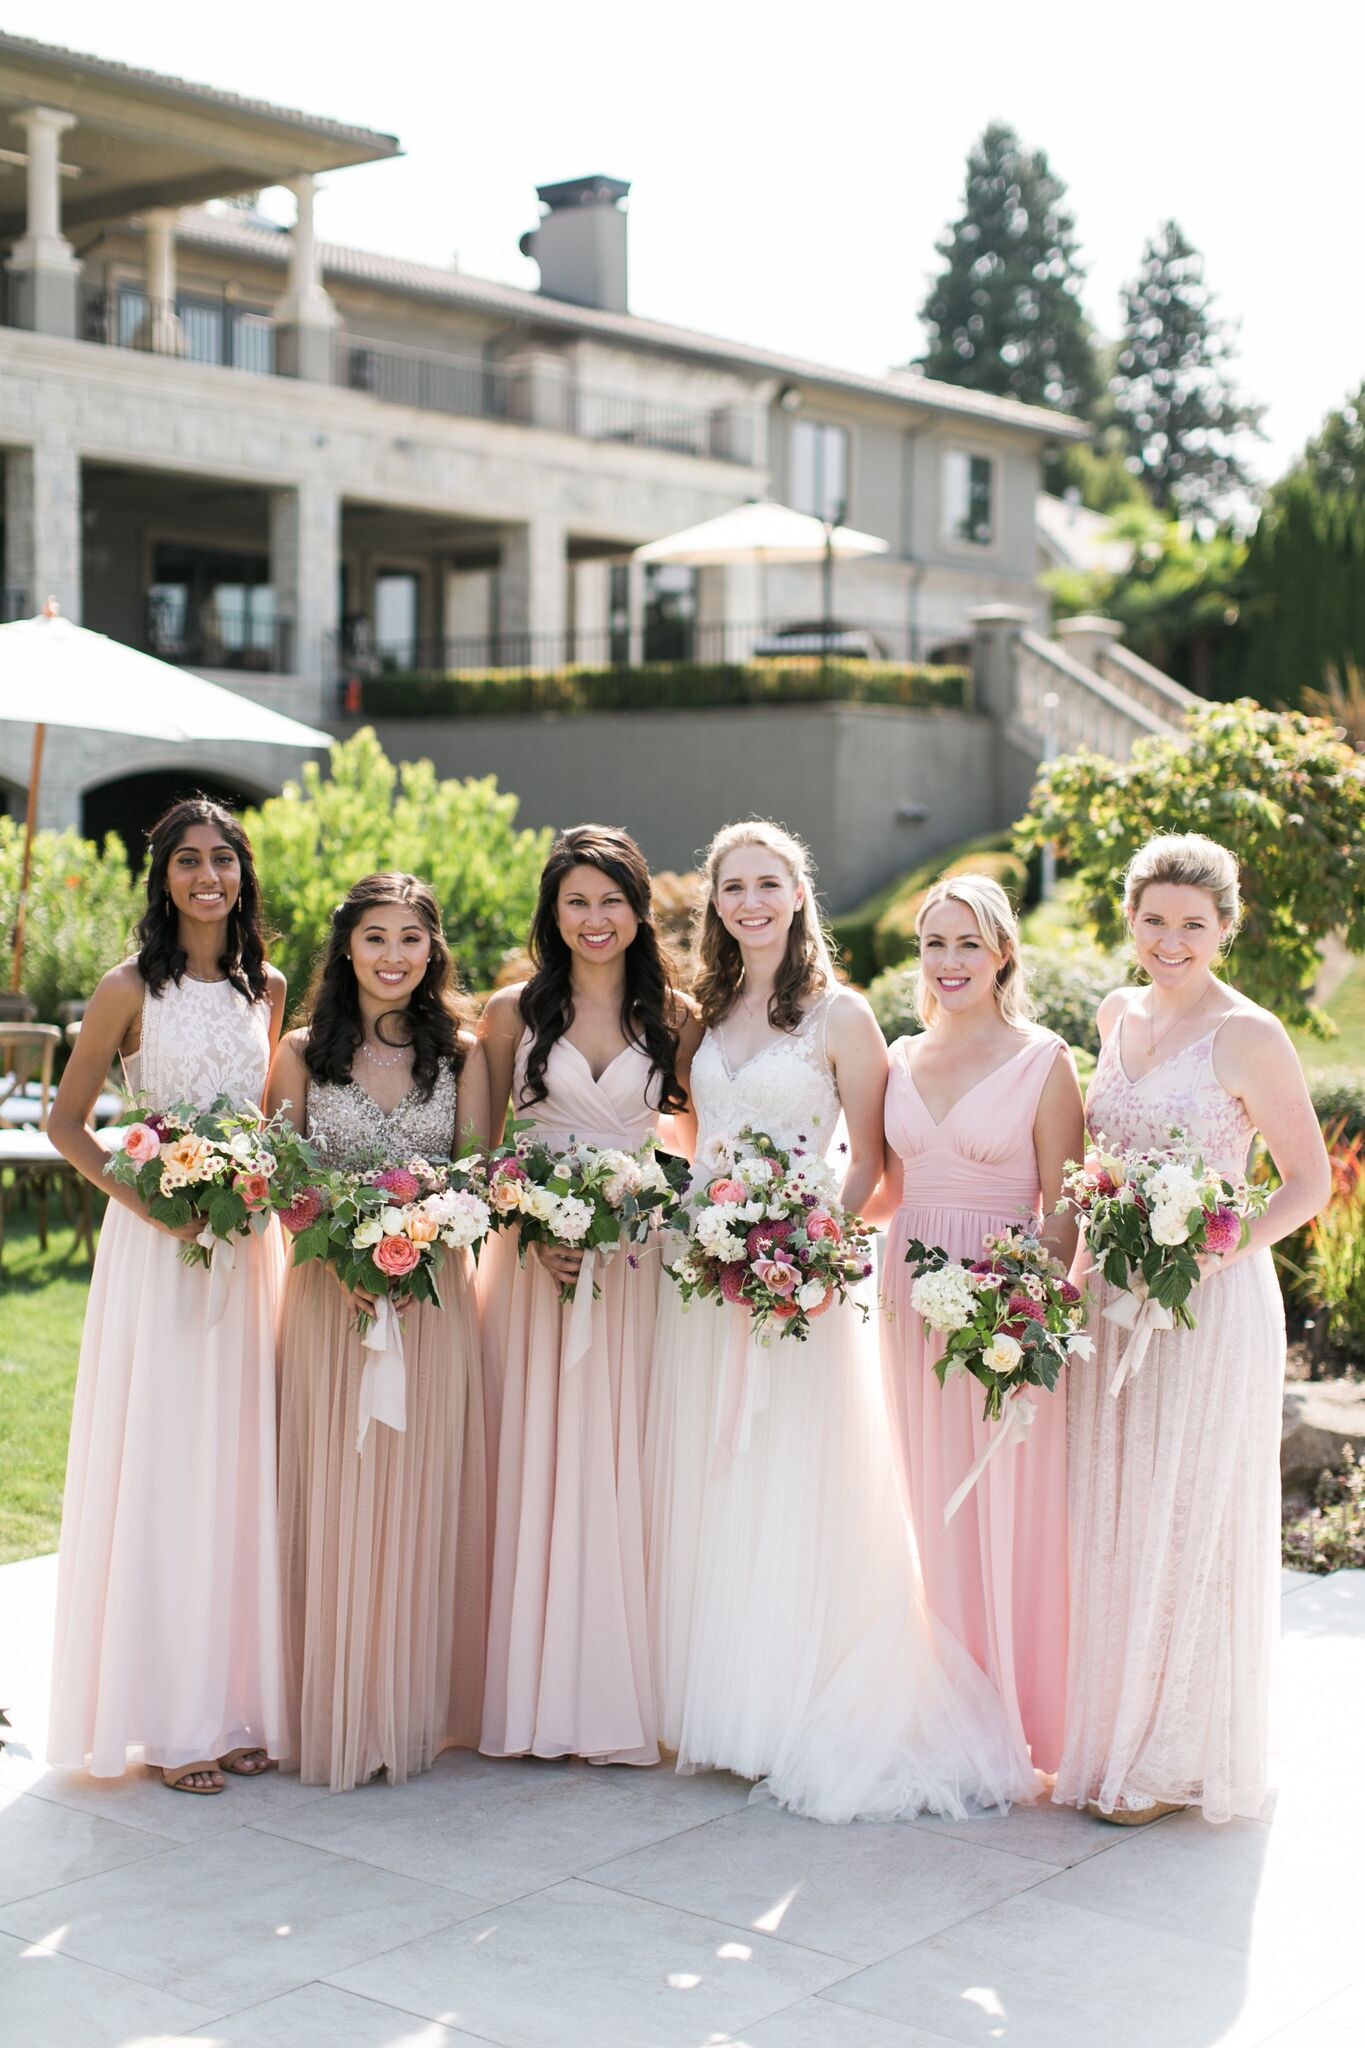 Bridalbliss.com | Seattle Wedding | Washington Event Coordination and Design | Matthew Land Studios